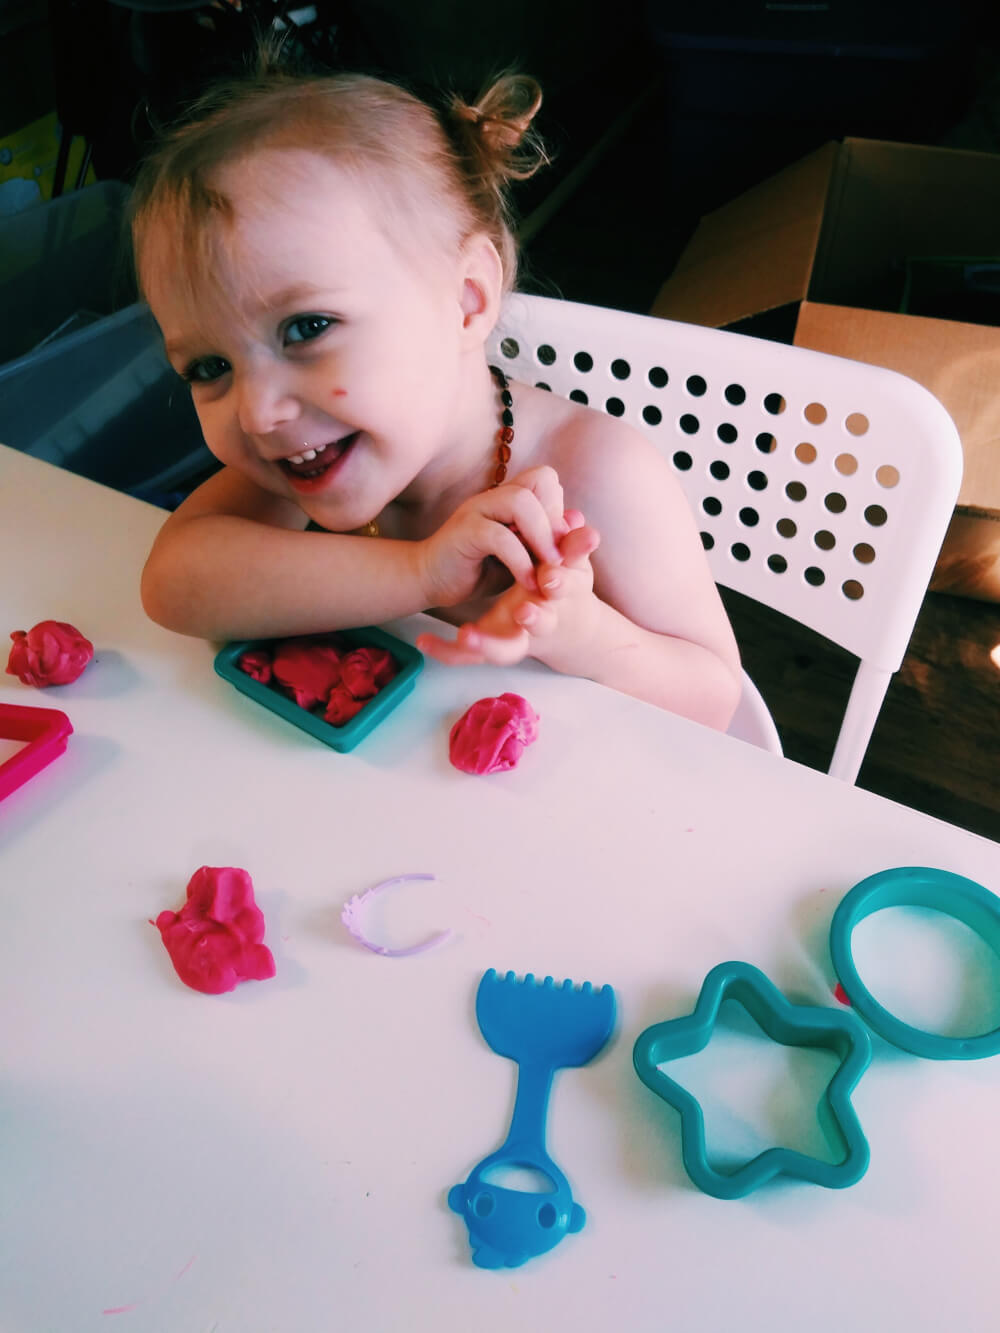 Caucasion toddler looking at photographer and giggling, while holding Playdough in hands